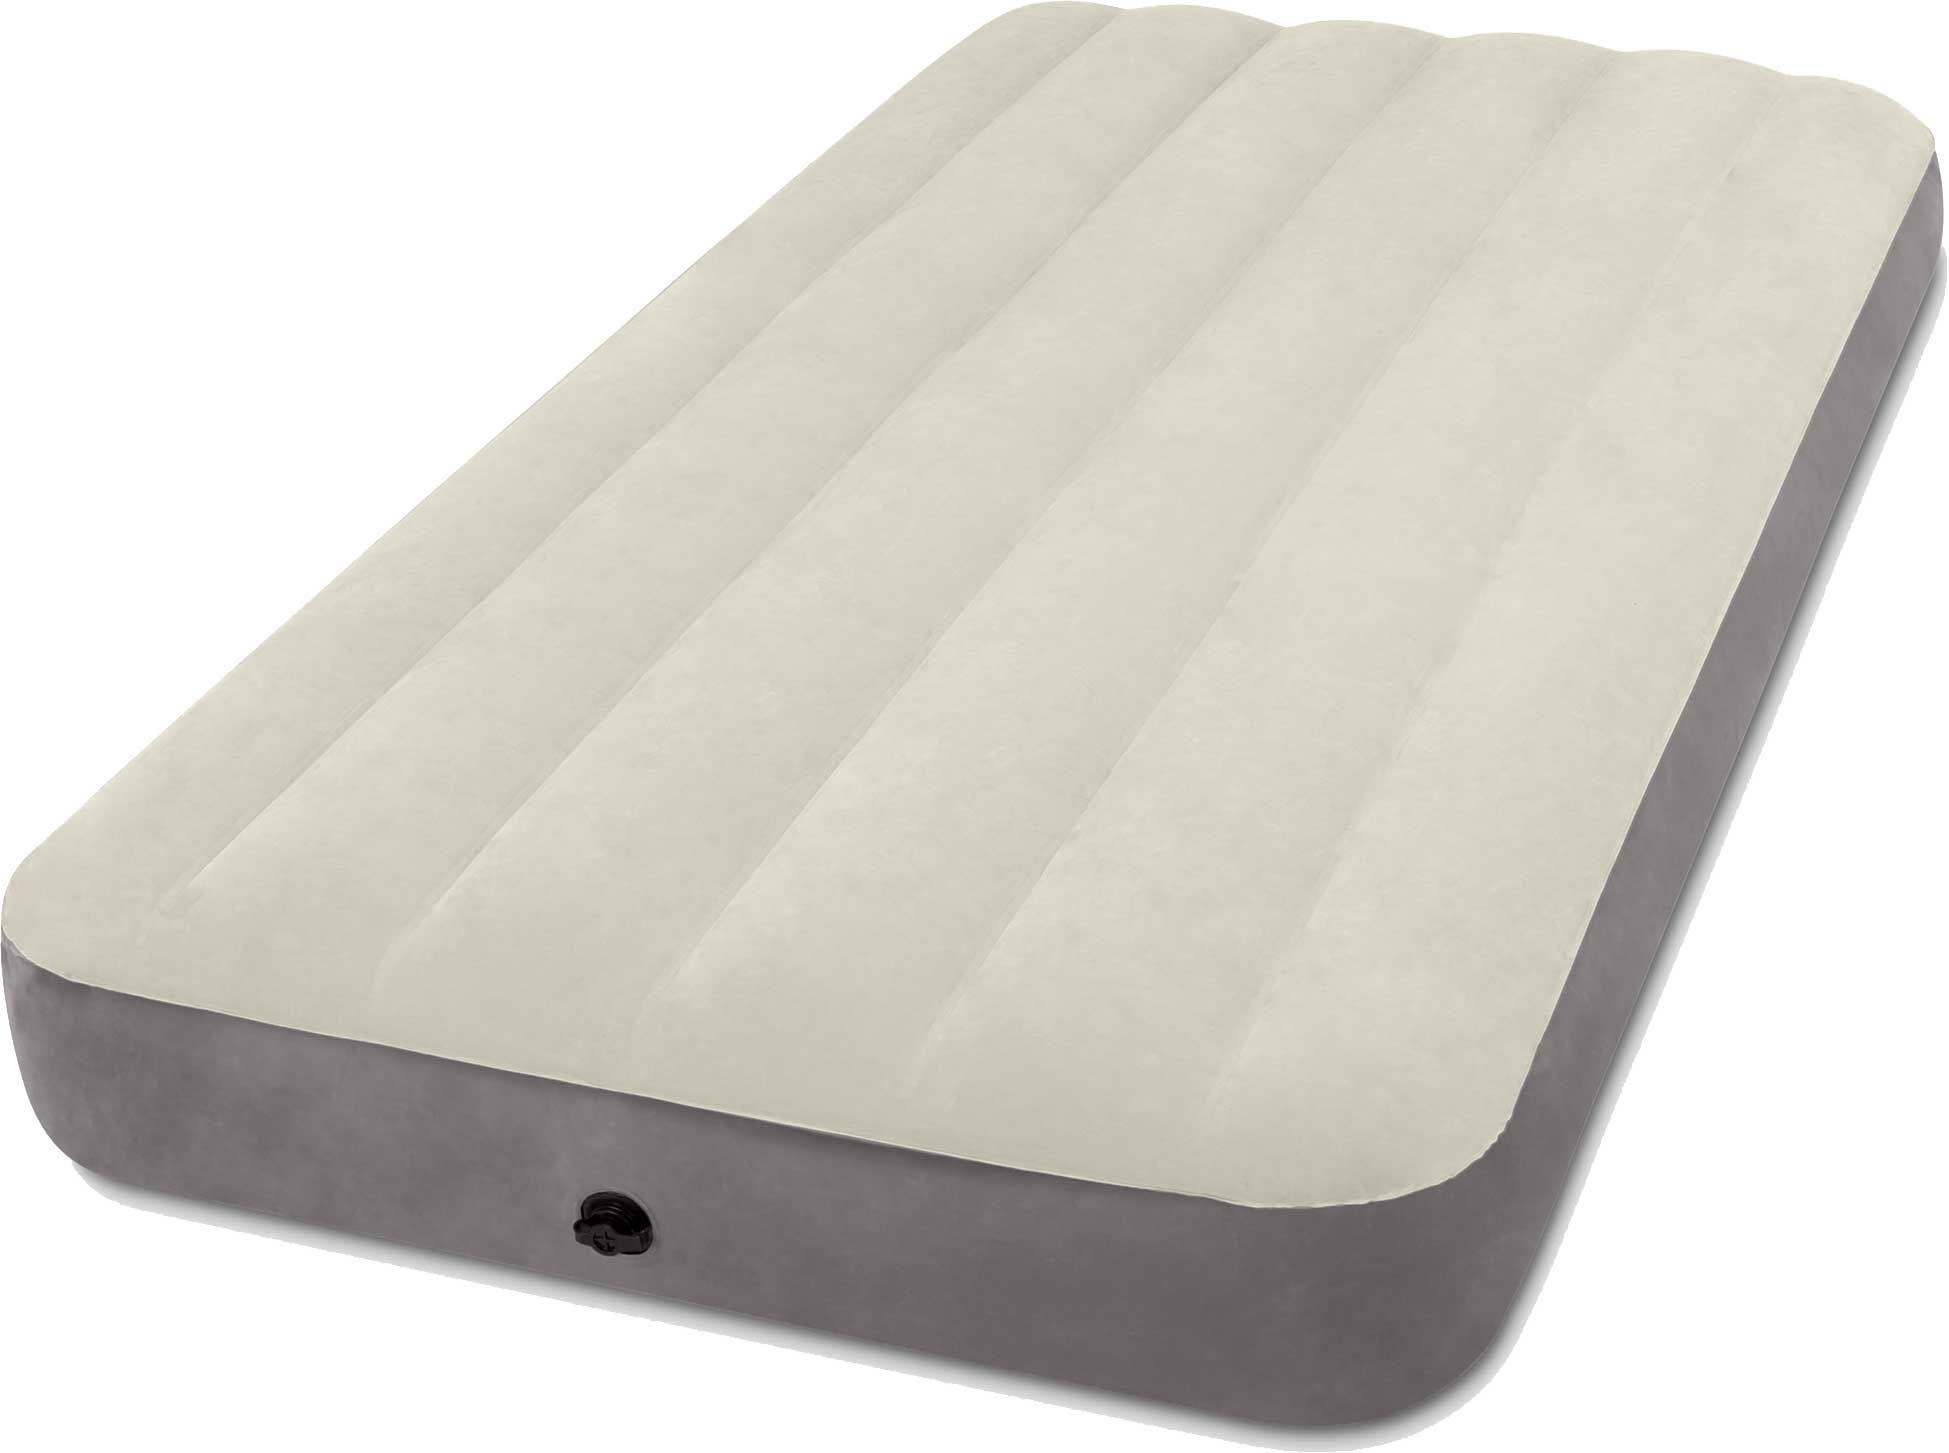 Intex Dura Beam Twin Air Mattress   DICK S Sporting Goods Intex Dura Beam Twin Air Mattress